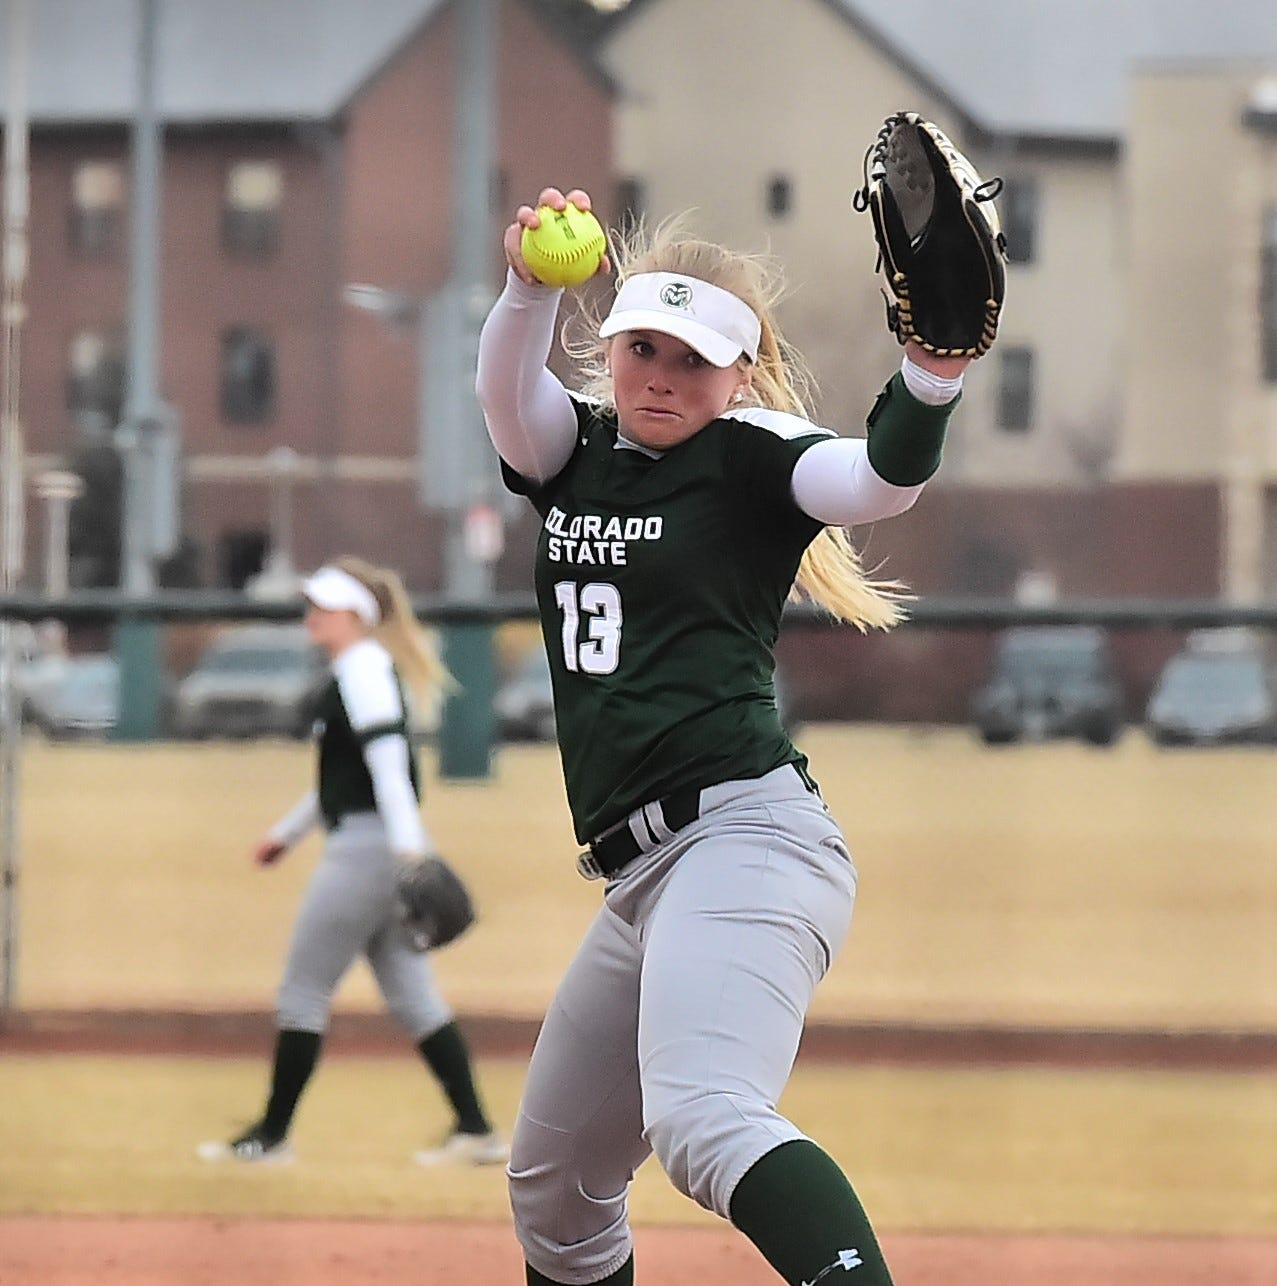 Gender-equity battle inspires CSU softball players 25 years later